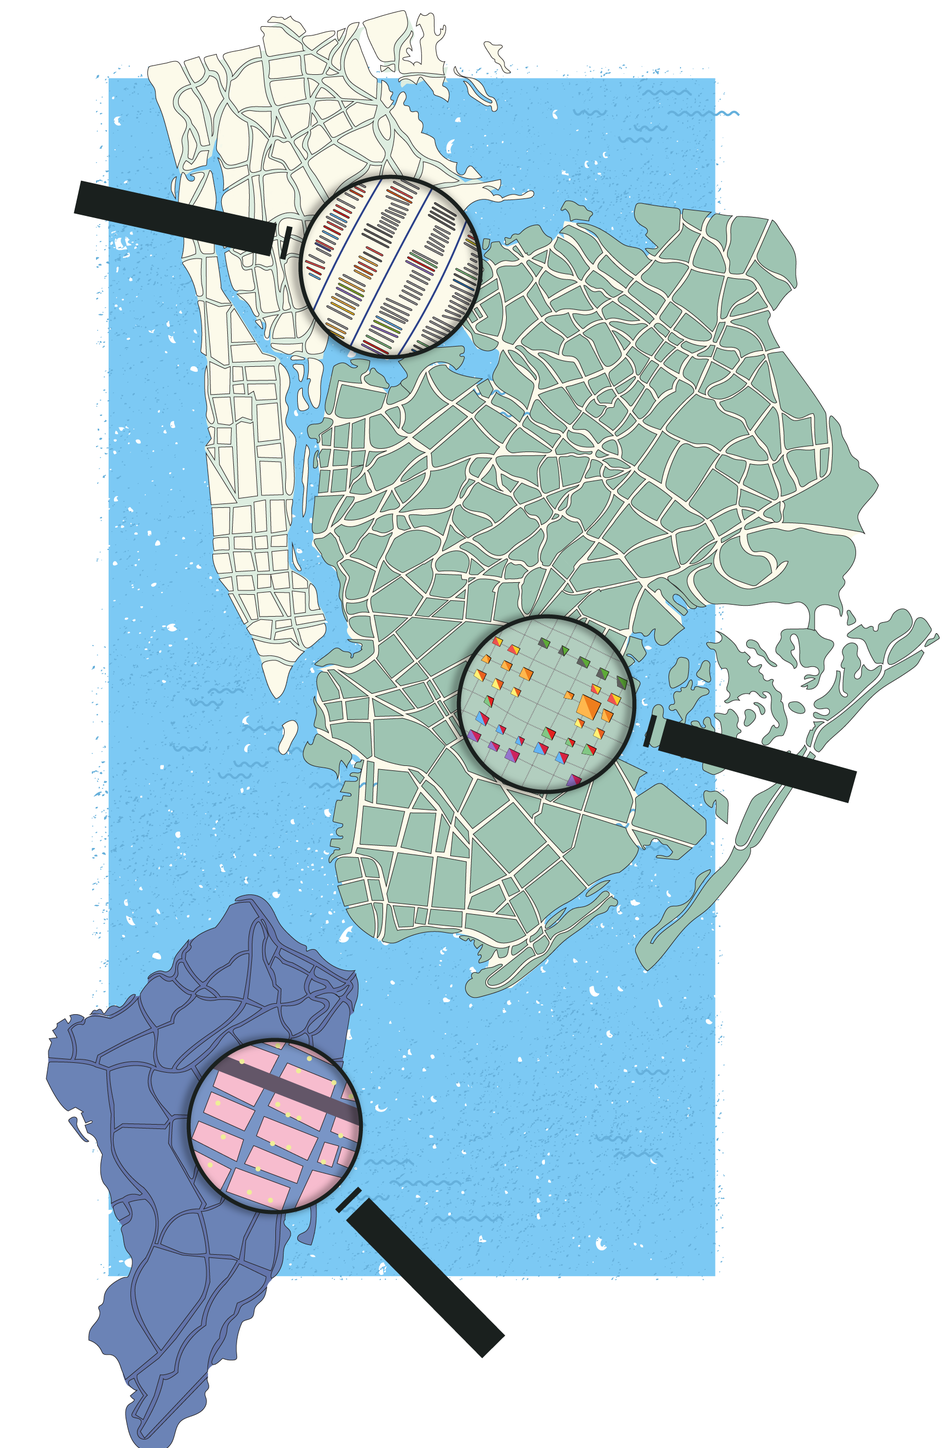 Map of New York city with three magnifying glasses. The glasses show a more detailed view of the map. They are showing different types of businesses and functions found across the city.